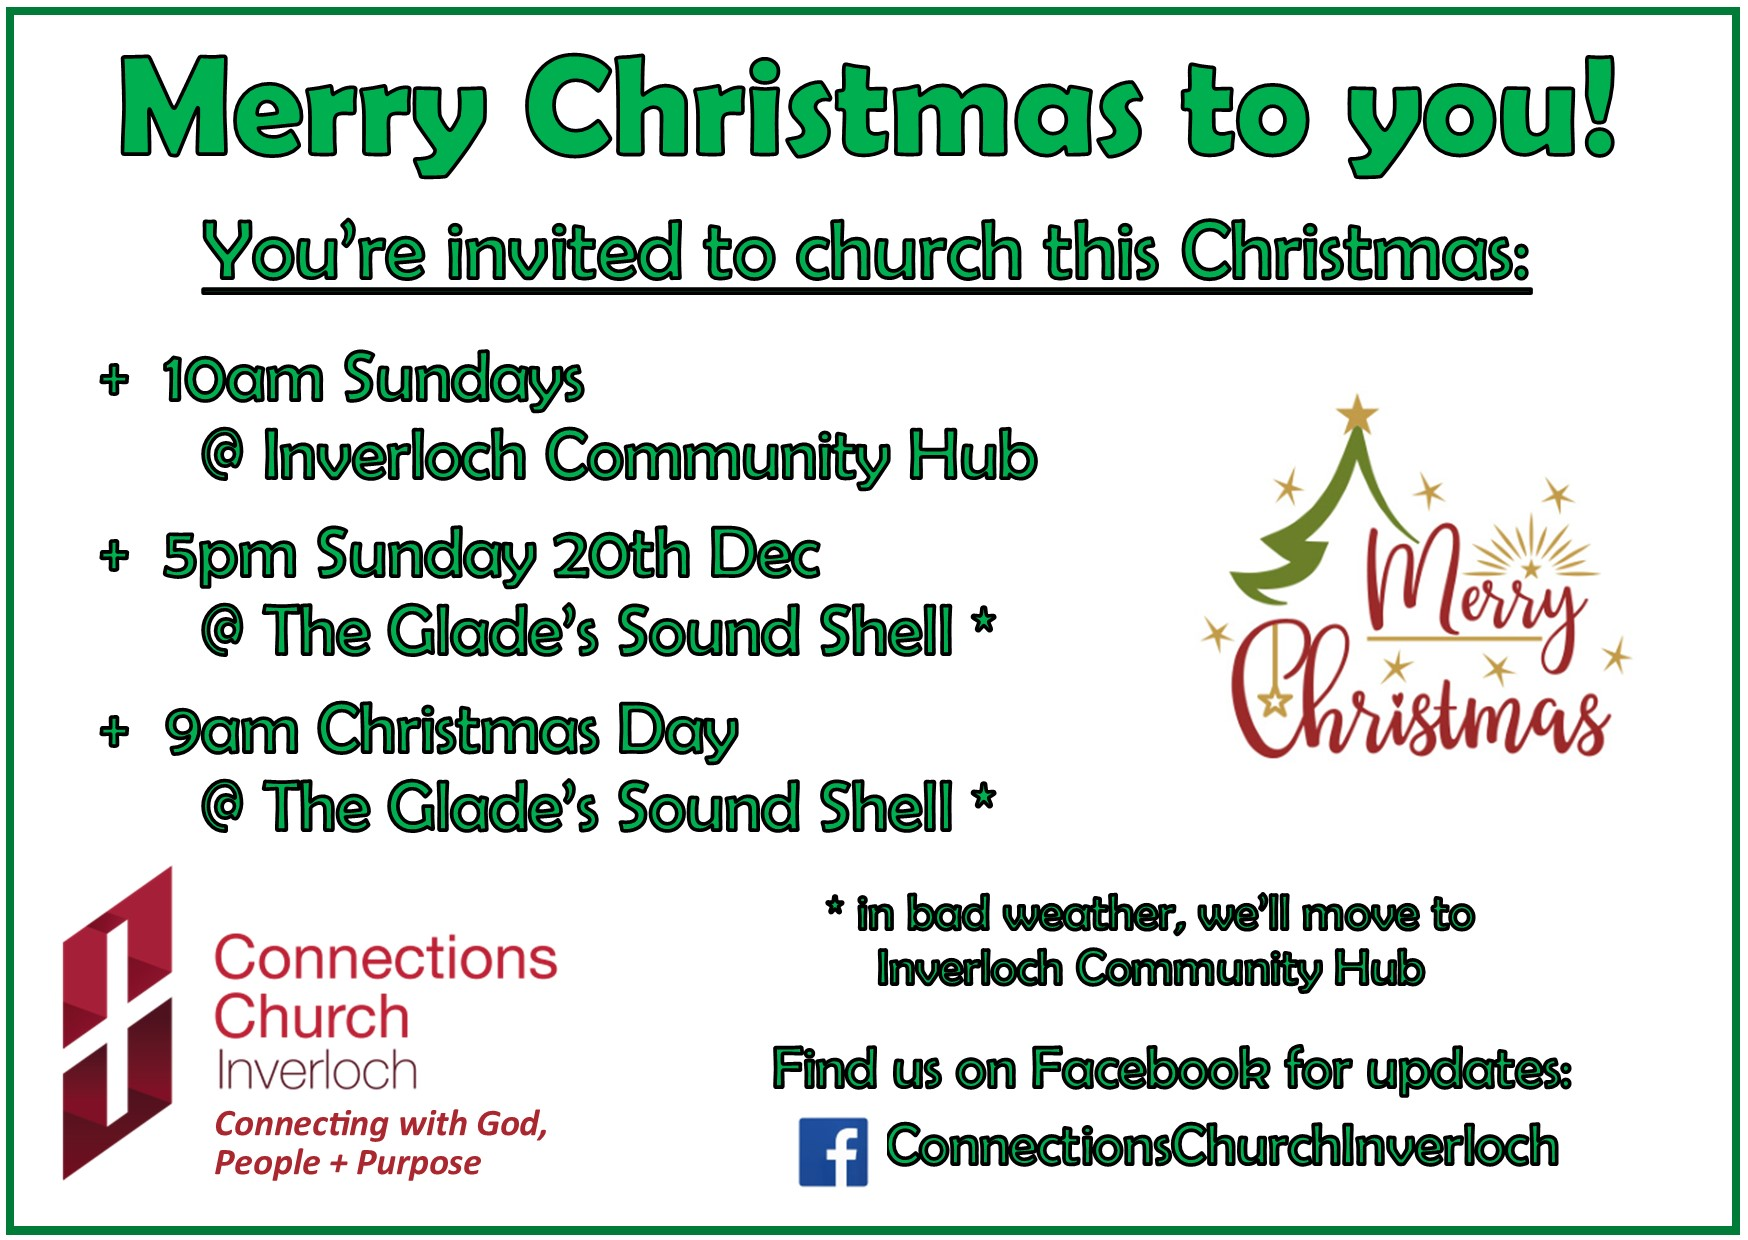 Connections Church Inverloch Christmas Invitation